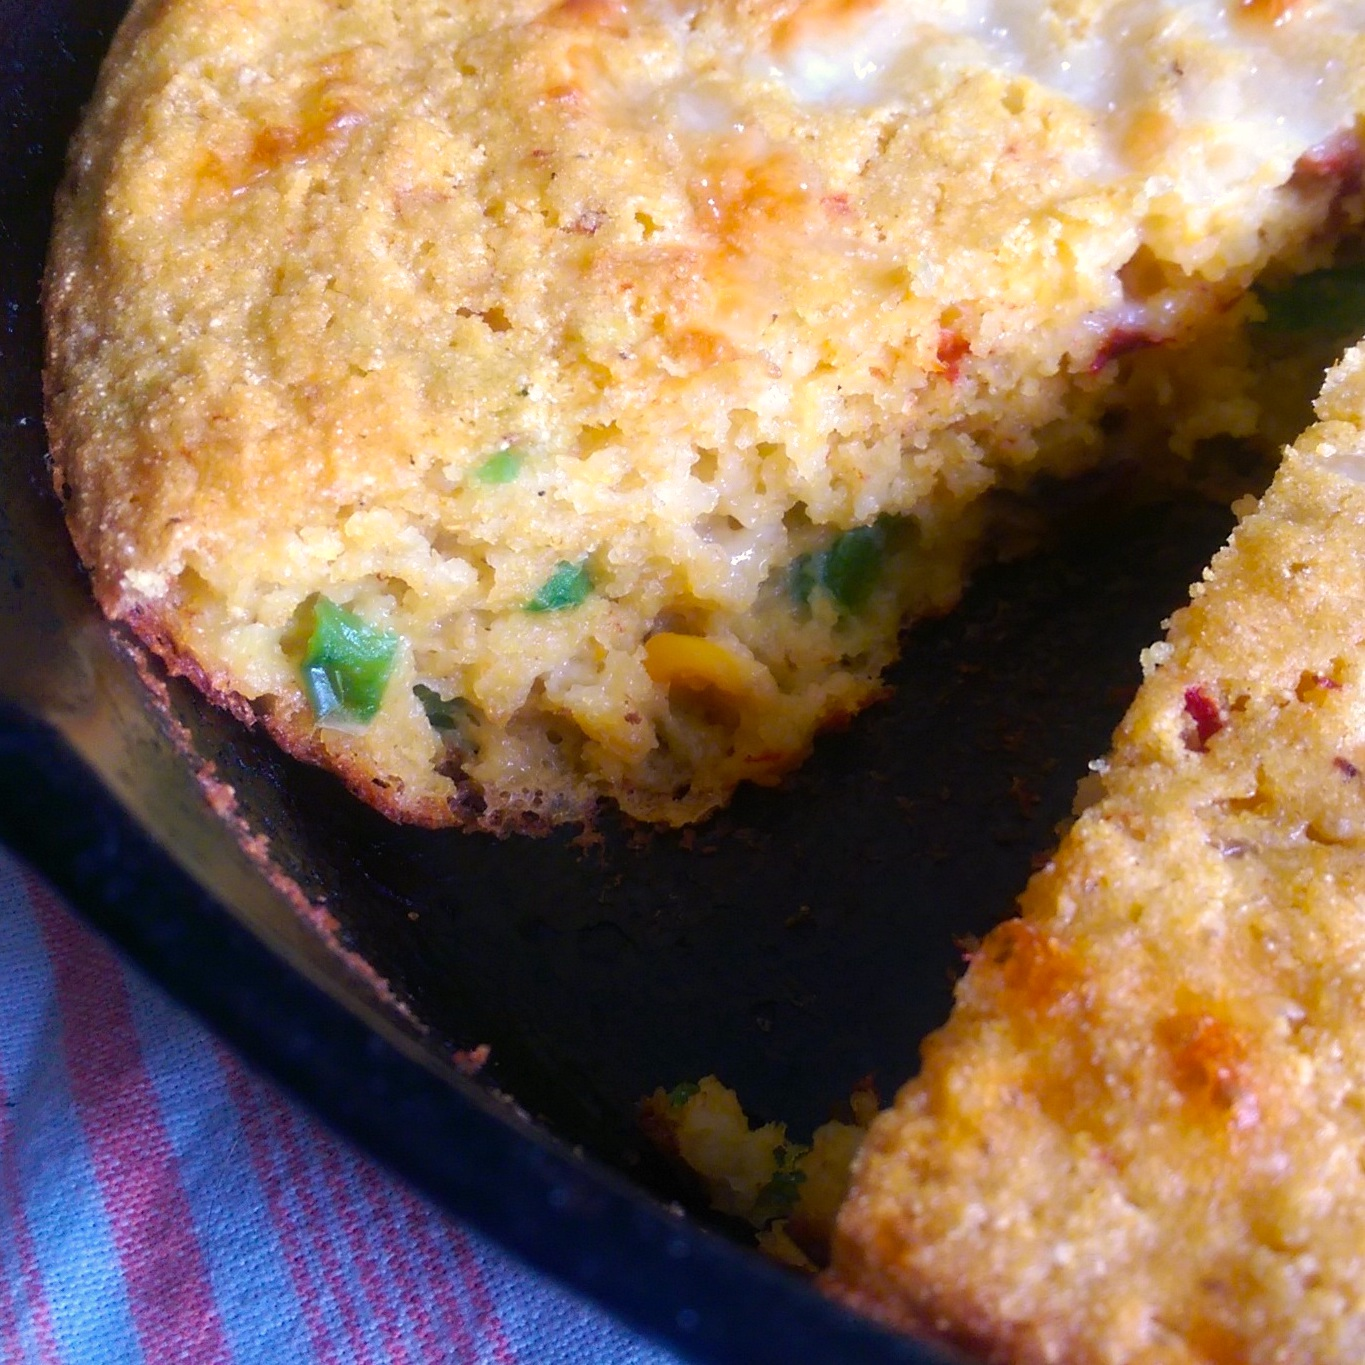 cornbread in a cast iron skillet with a slice cut out